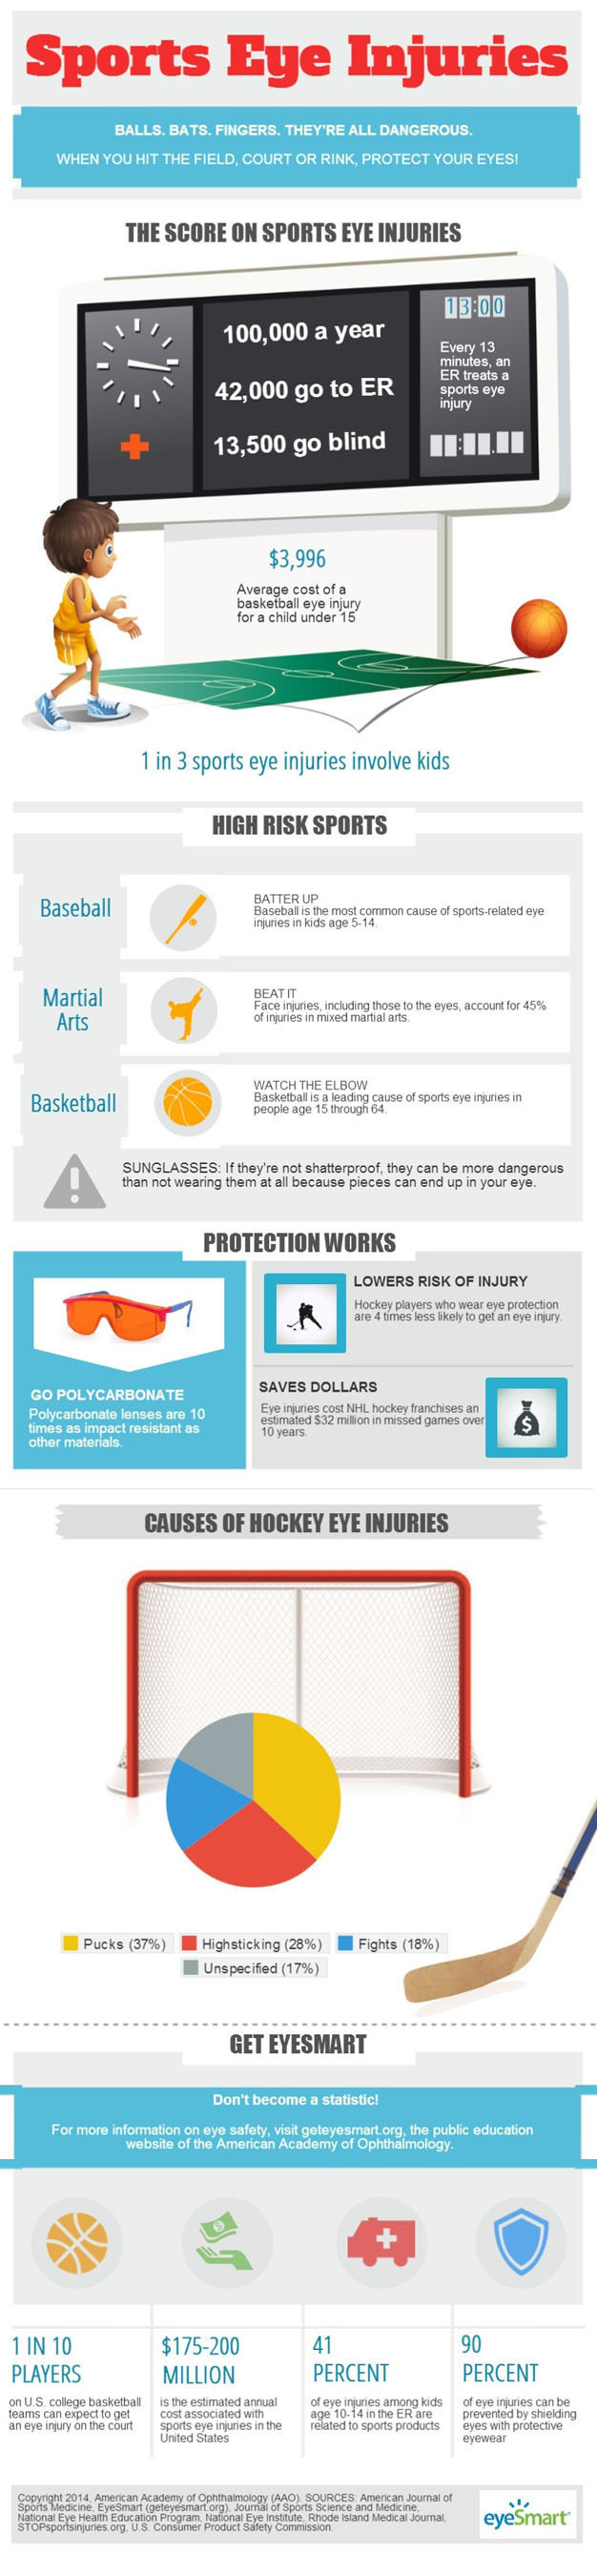 Of the 100,000 eye injuries resulting from sports each year, an estimated 42,000 people are treated in the ...